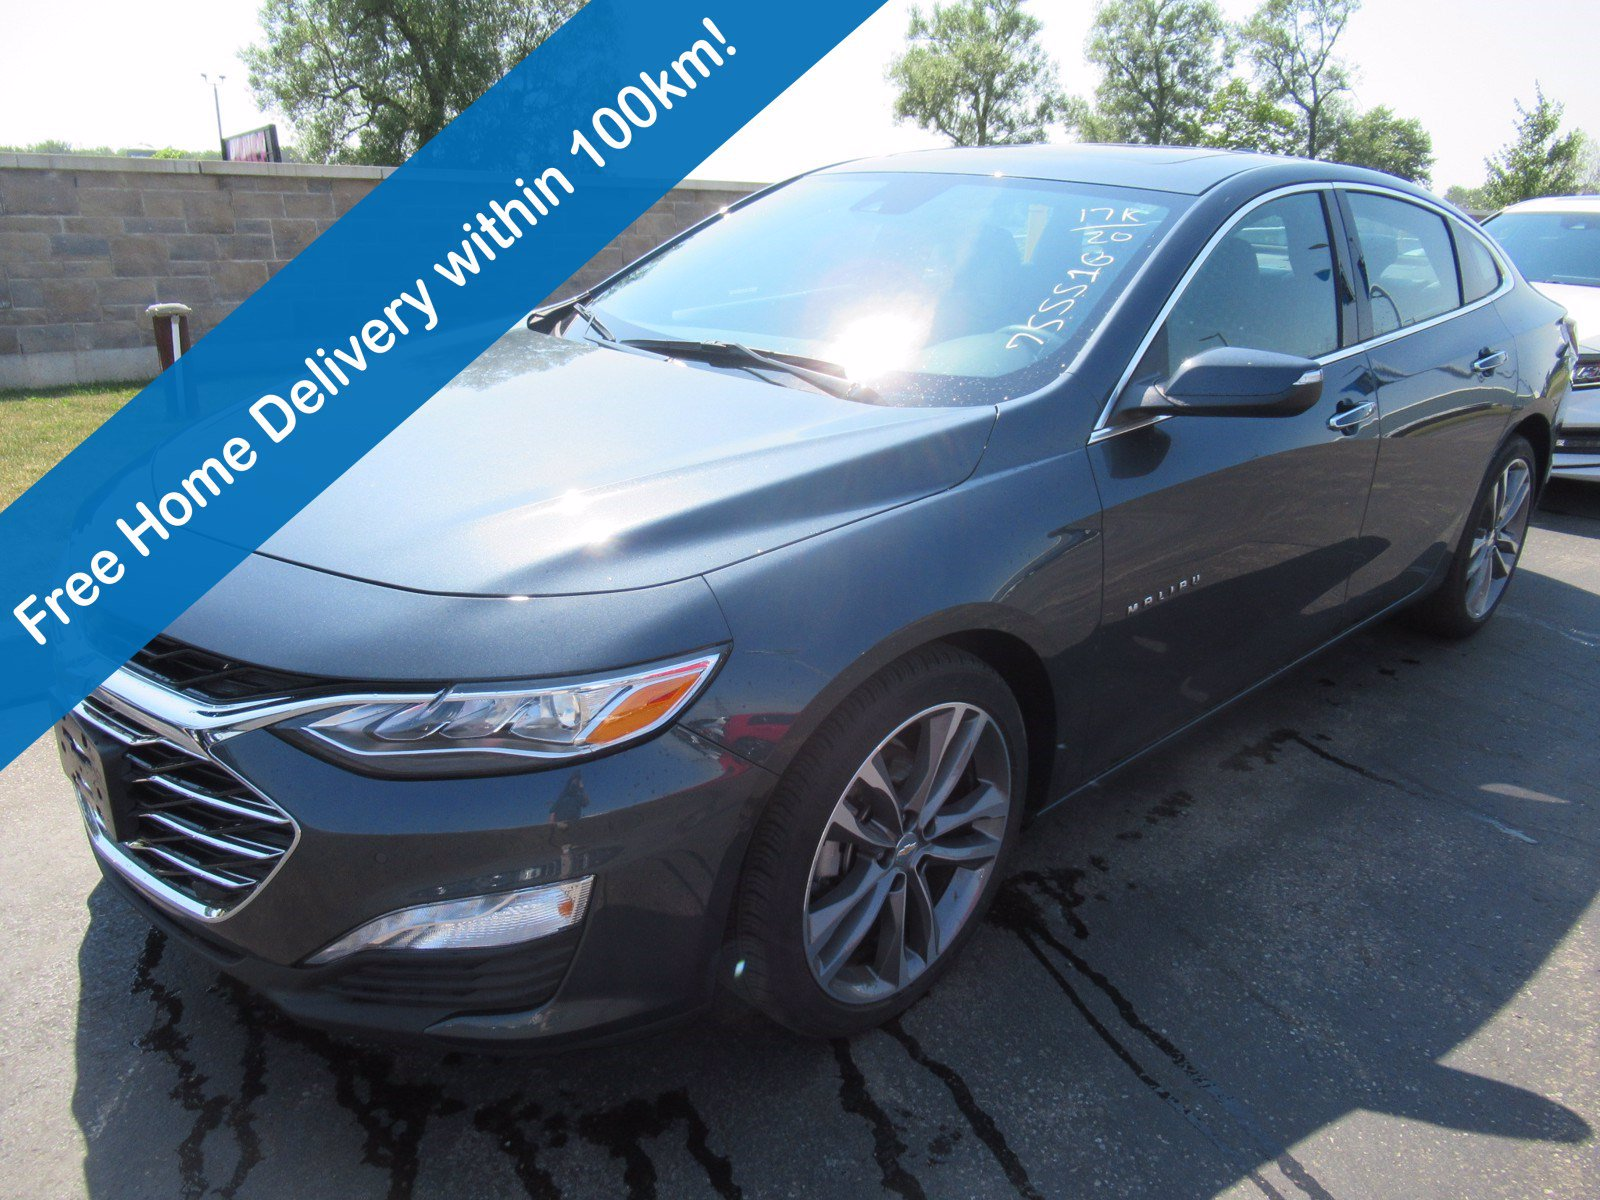 Certified Pre-Owned 2020 Chevrolet Malibu Premier, Leather, Sunroof, Heated Steering & Seats, Blindspot Monitor, Remote Start & Much More!